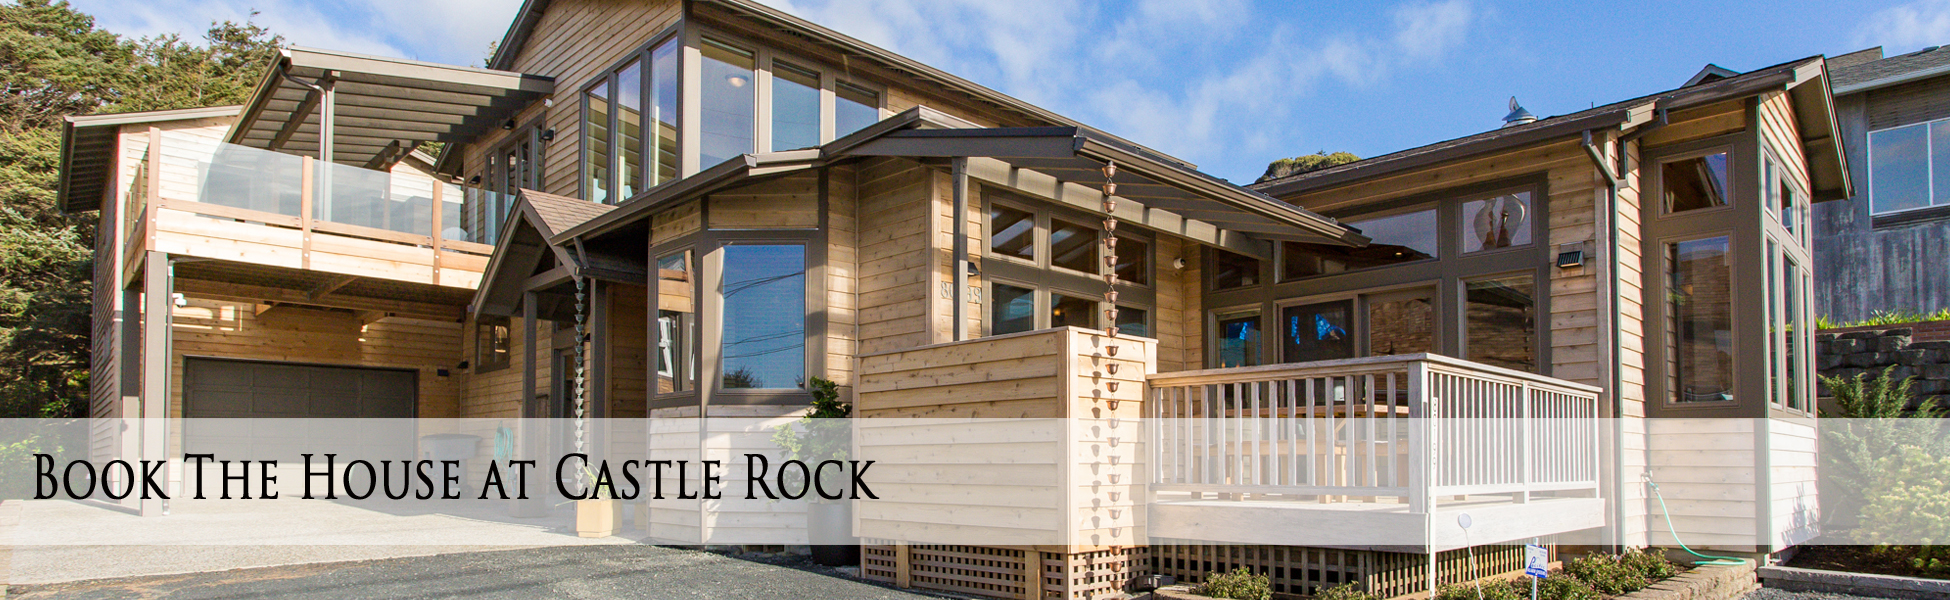 Book The House at Castle Rock